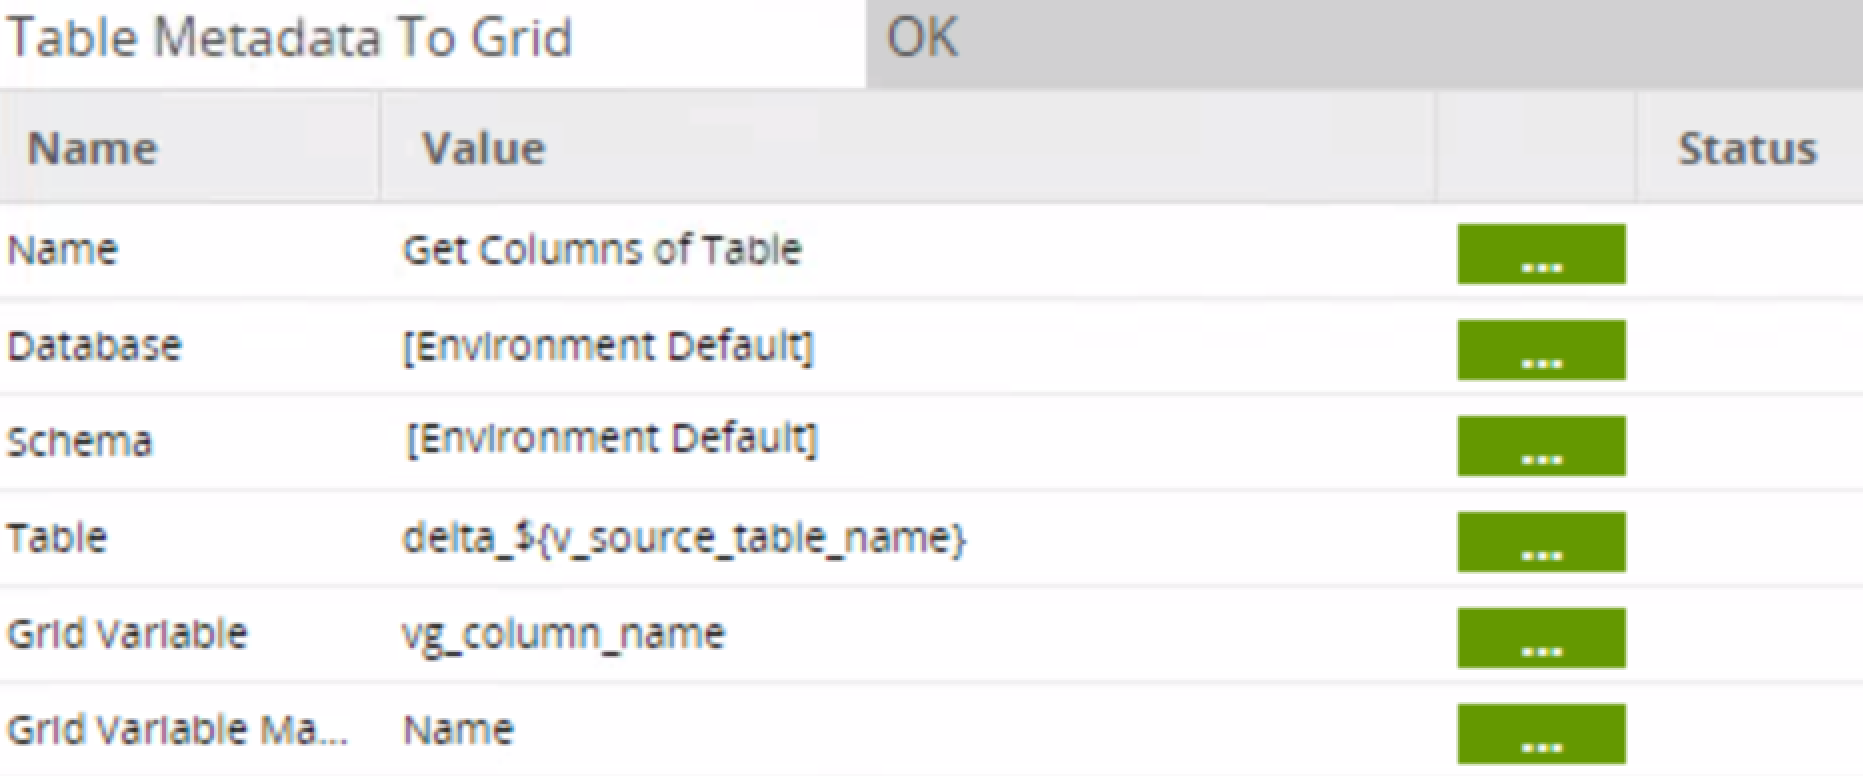 table metadata to grid in Matillion